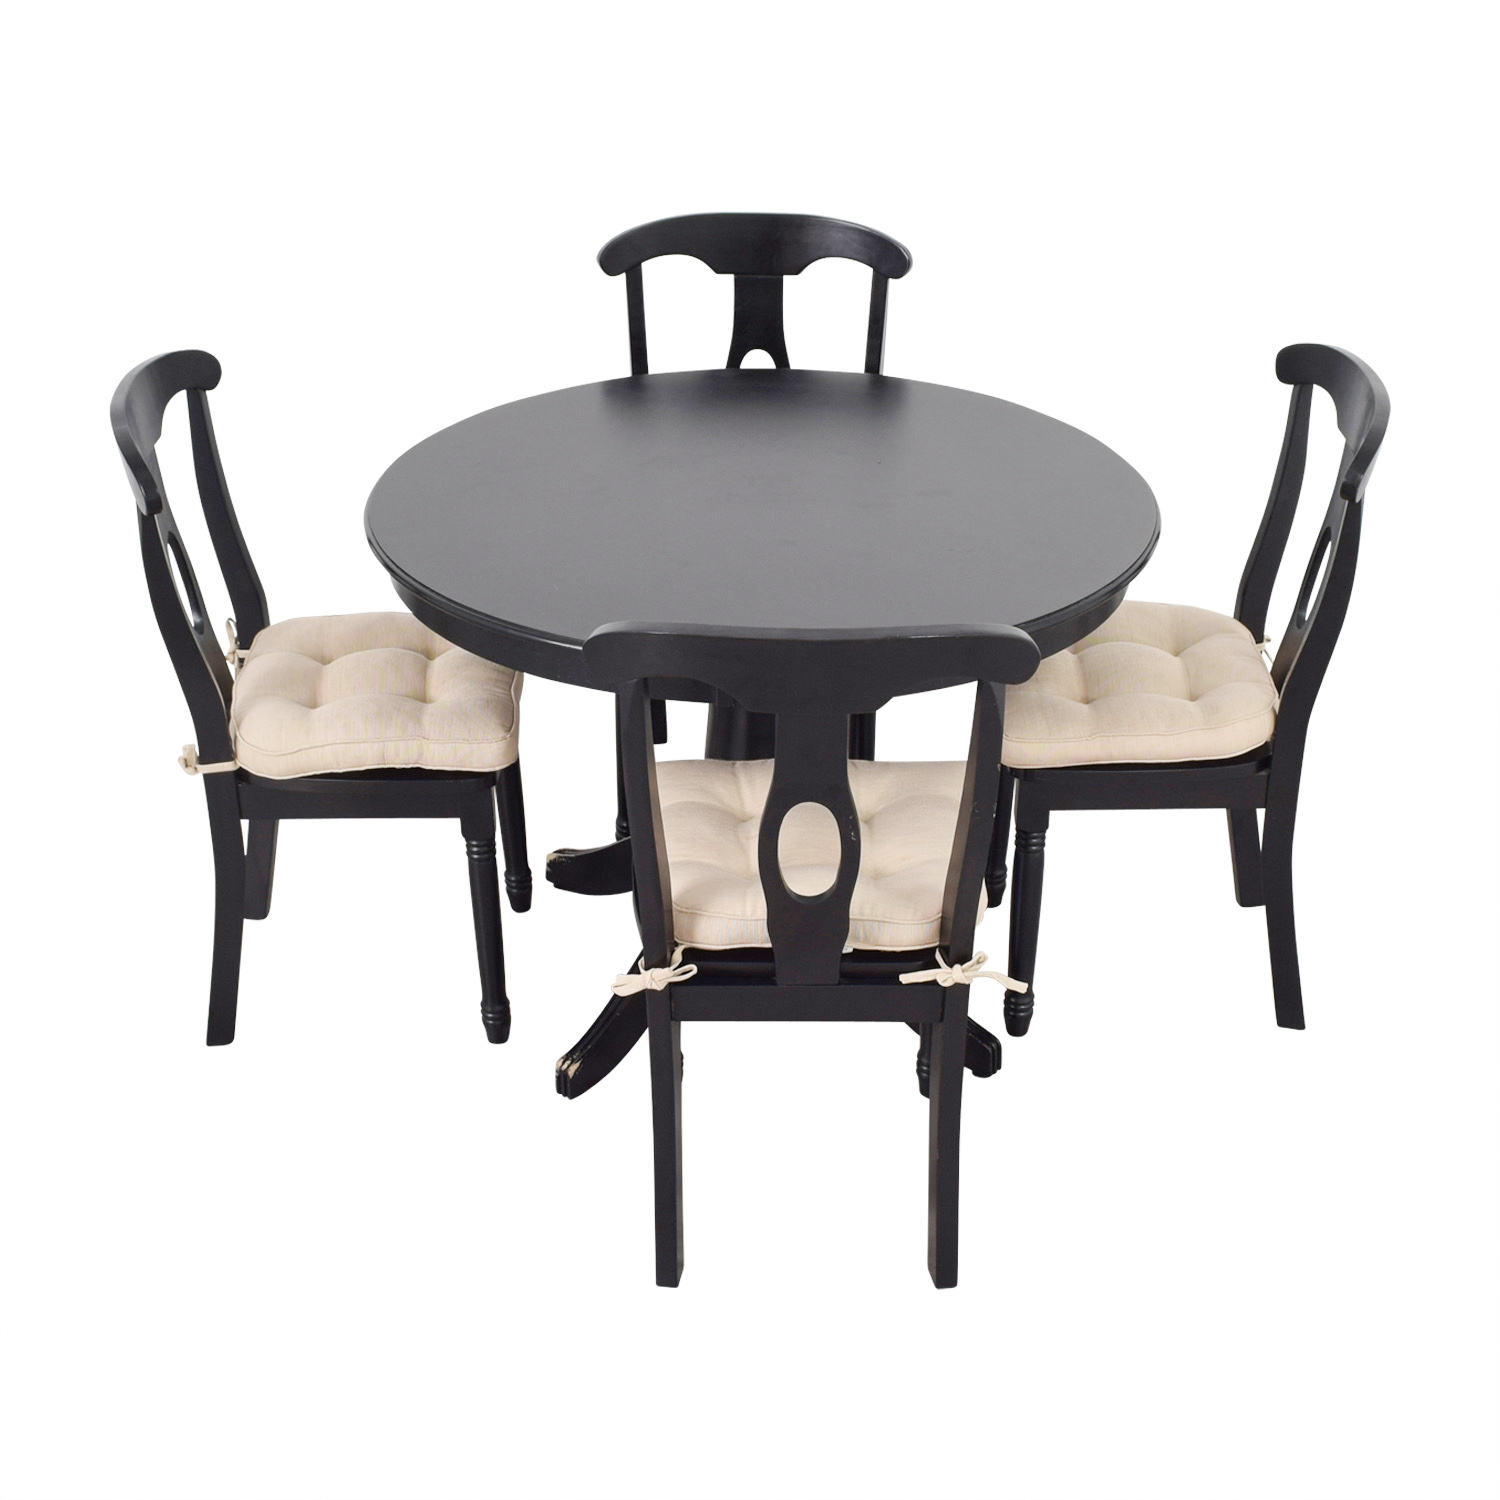 Martha Stewart Dining Set with Beige Upholstered Chairs / Dining Sets